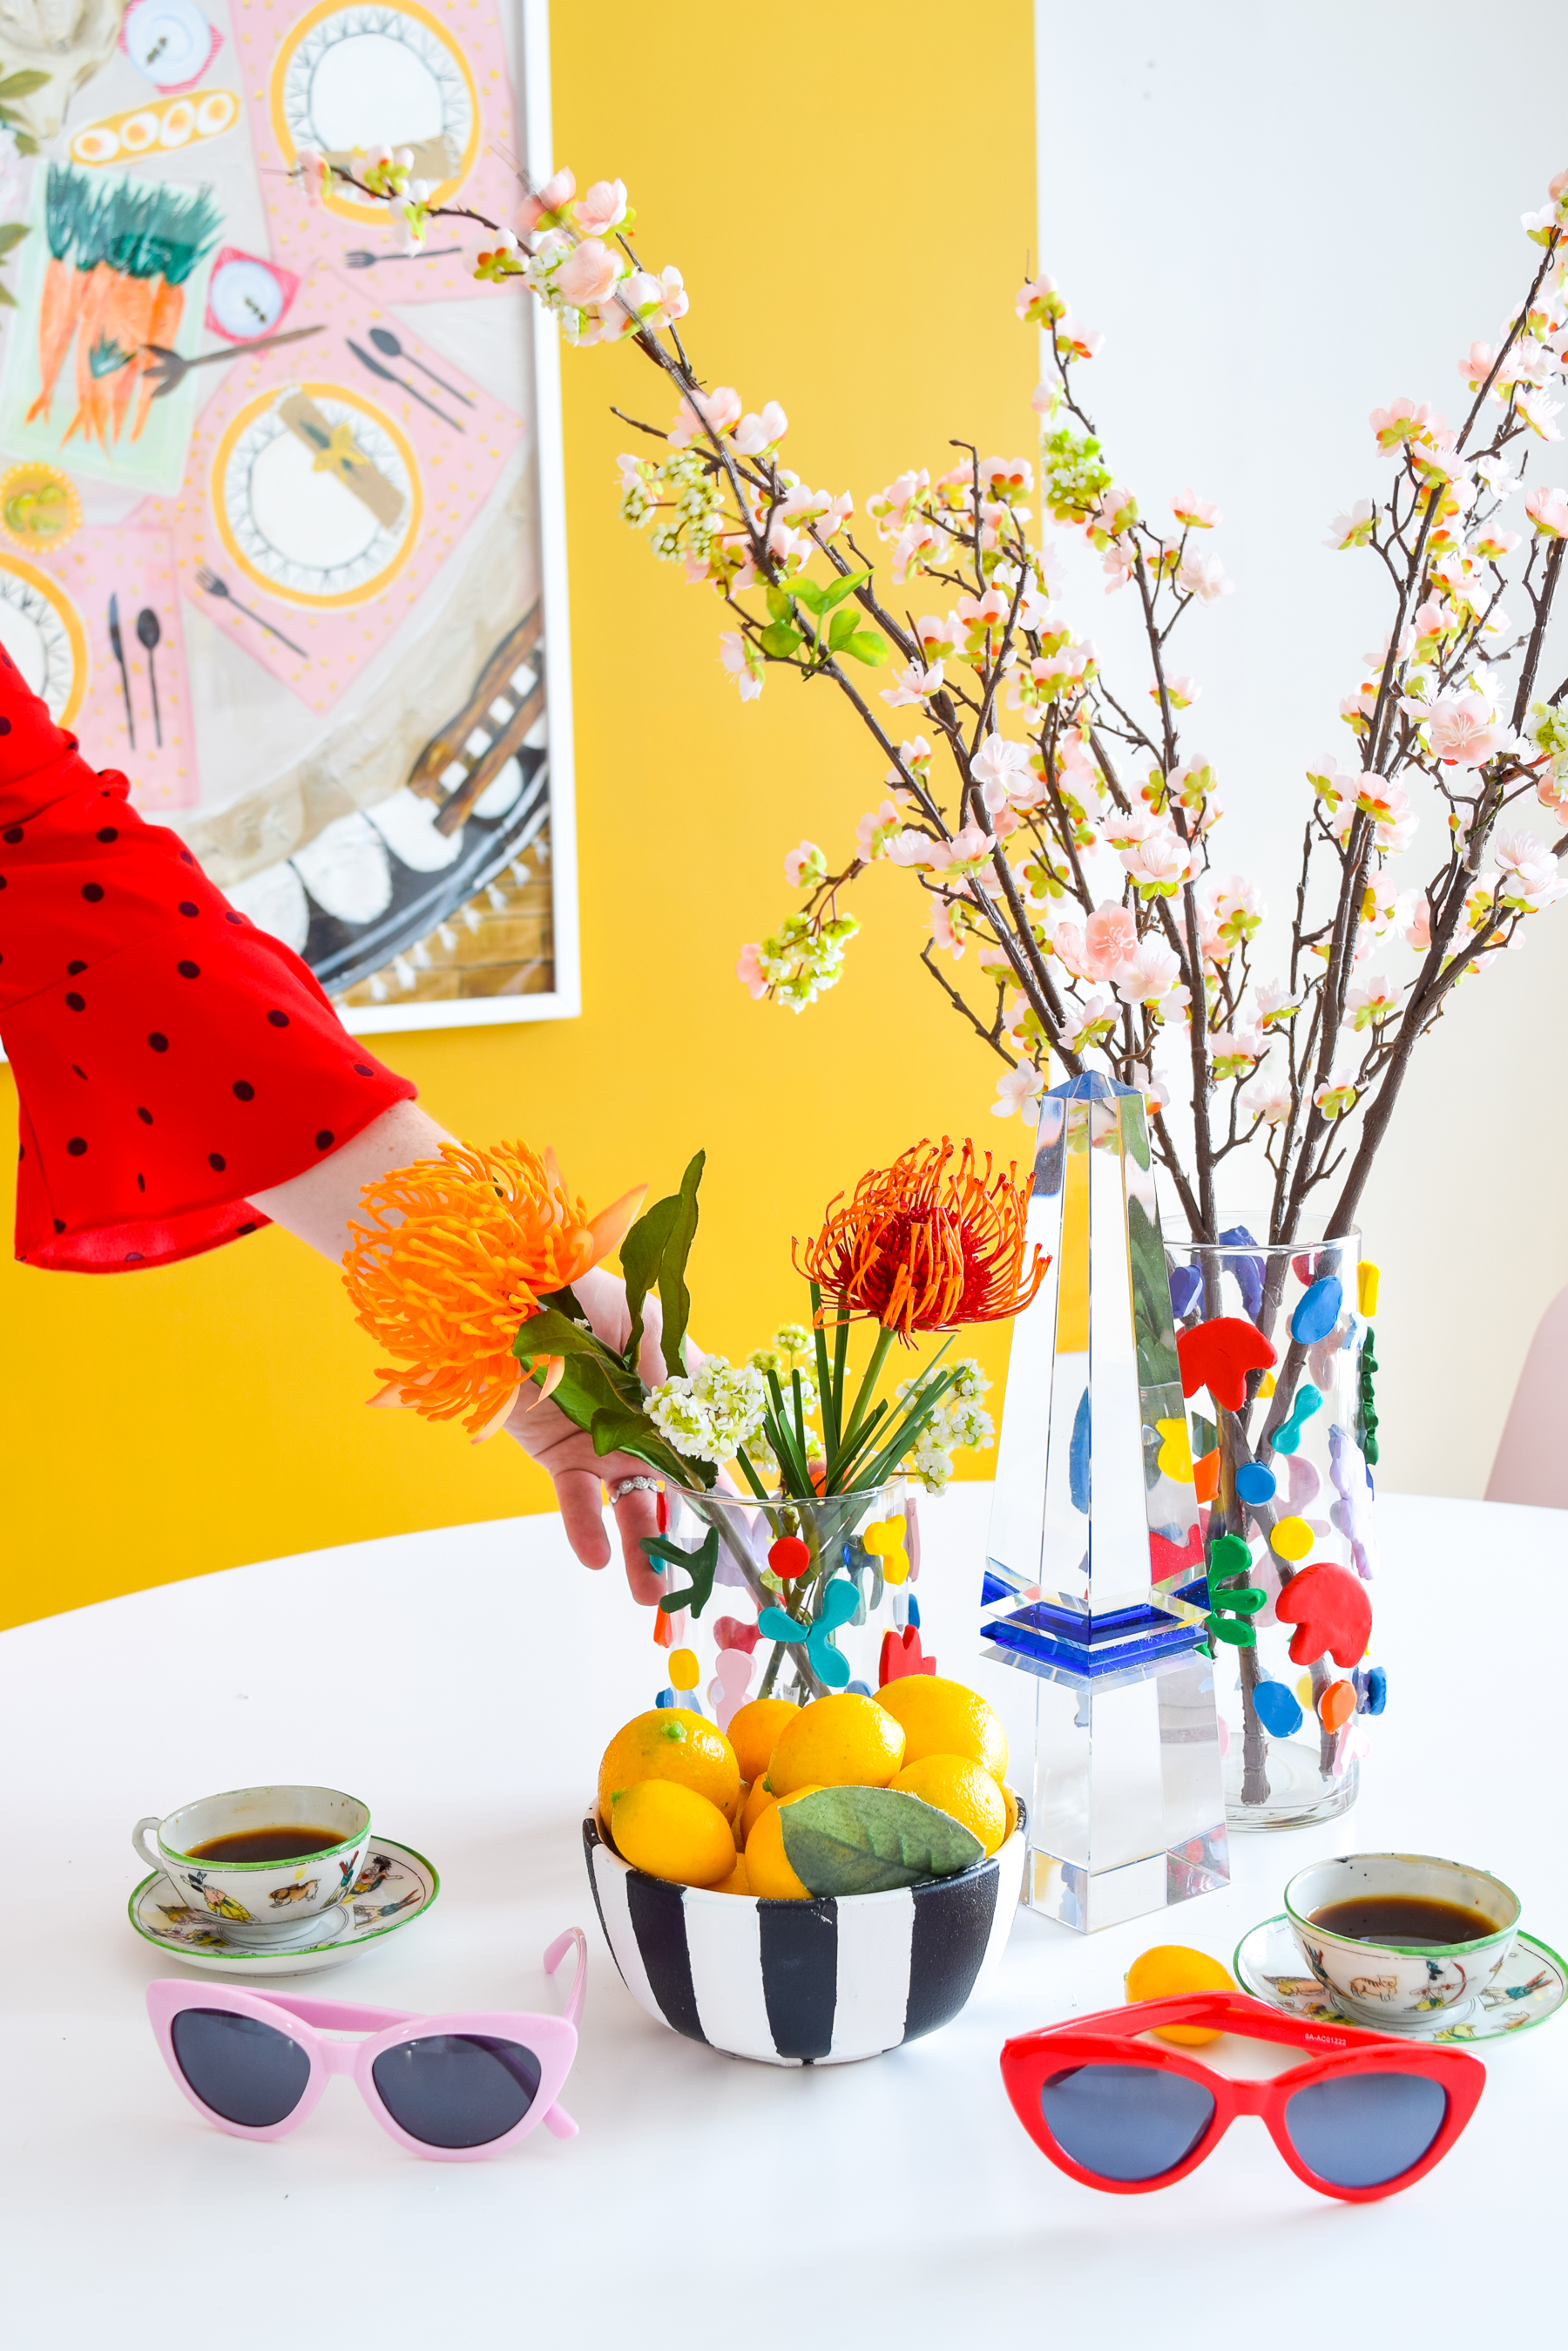 Inspired by the french master, my DIY Matisse Clay Vases are a bold way to add shape and colour to your floral scenes.